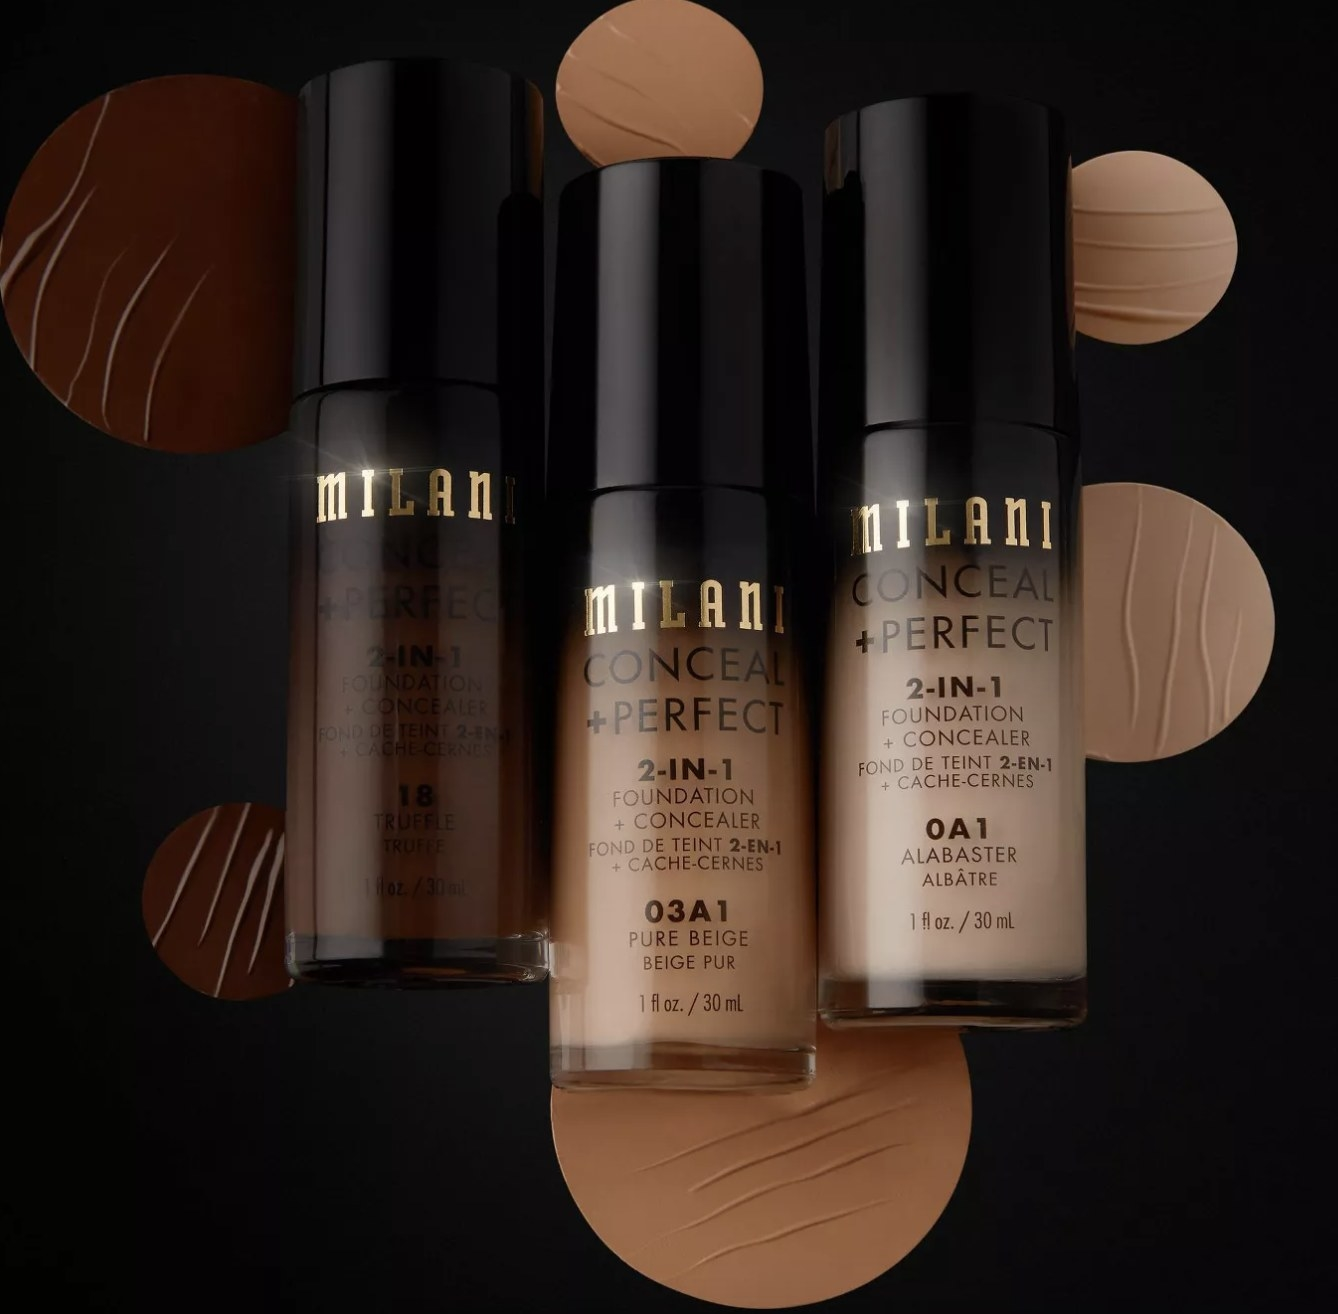 A few bottles of 2-in-1 foundation and concealer